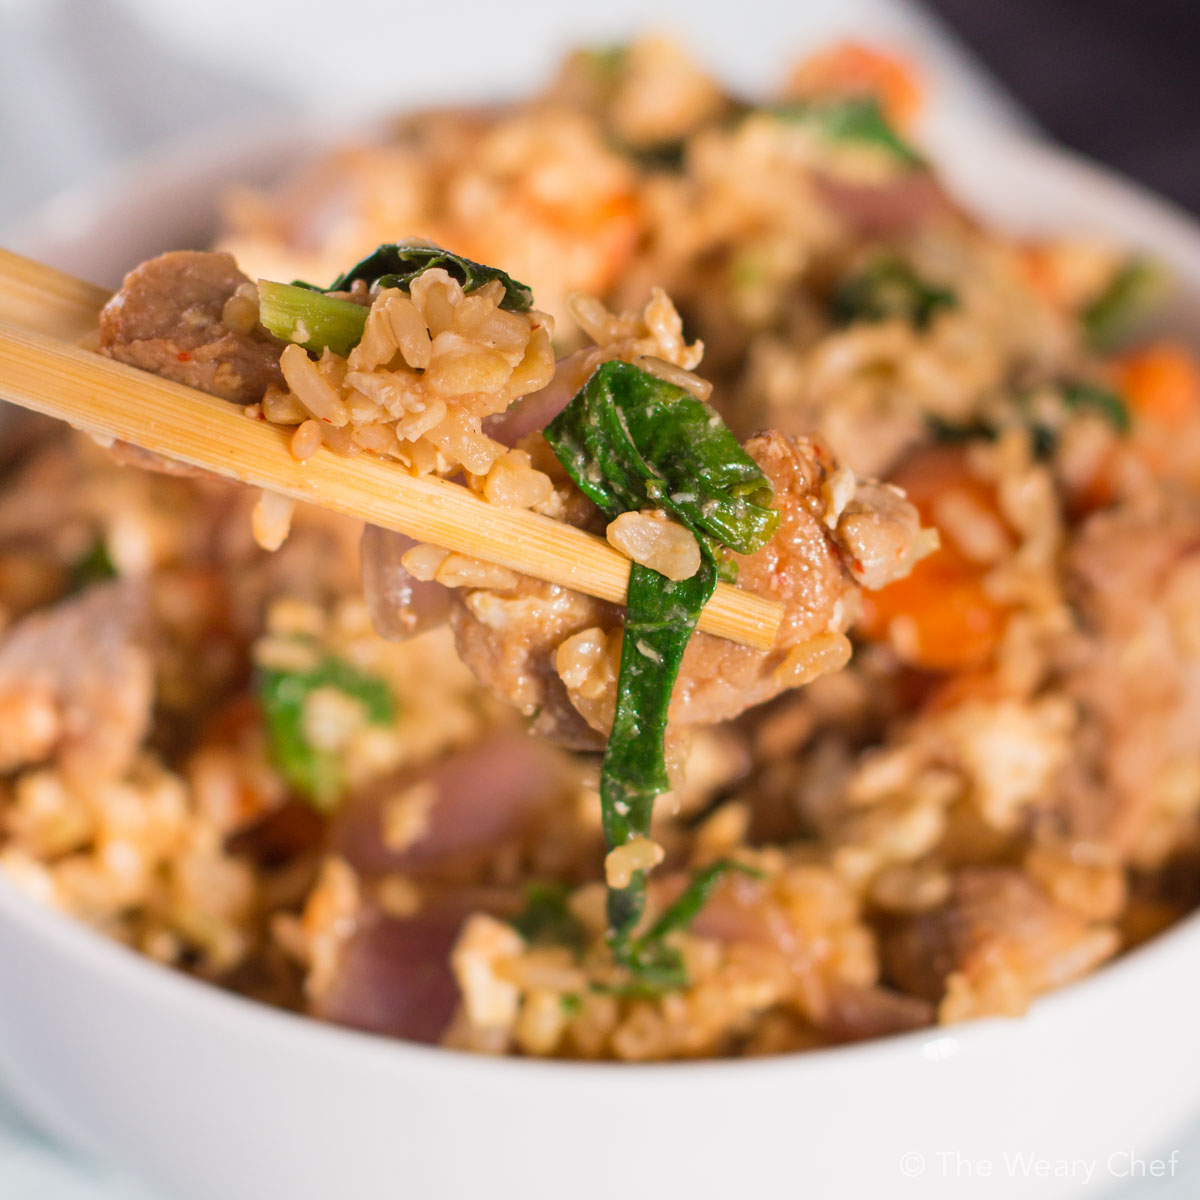 This quick and flavorful pork fried rice can be made in under 20 minutes and is a versatile dinner recipe that uses what you have on hand!